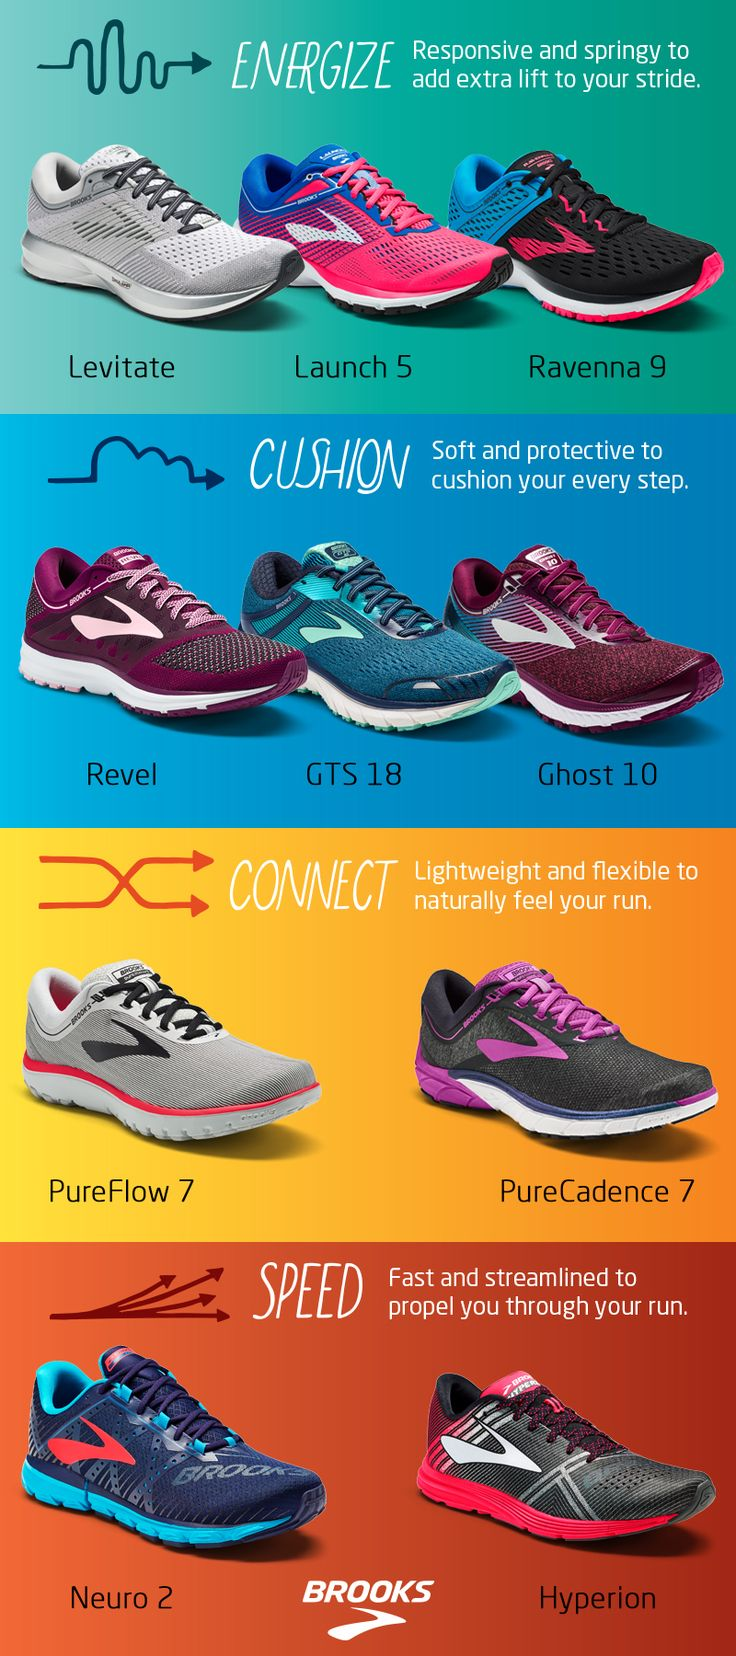 Brooks Running Shoe Finder |   Not sure which running shoe is right for you and your running style? Find the perfect pair with Brooks Running Shoe Finder. From soft and protective shoes that cushion, to responsive and spring shoes that energize, there's something for everyone. Find yours today.